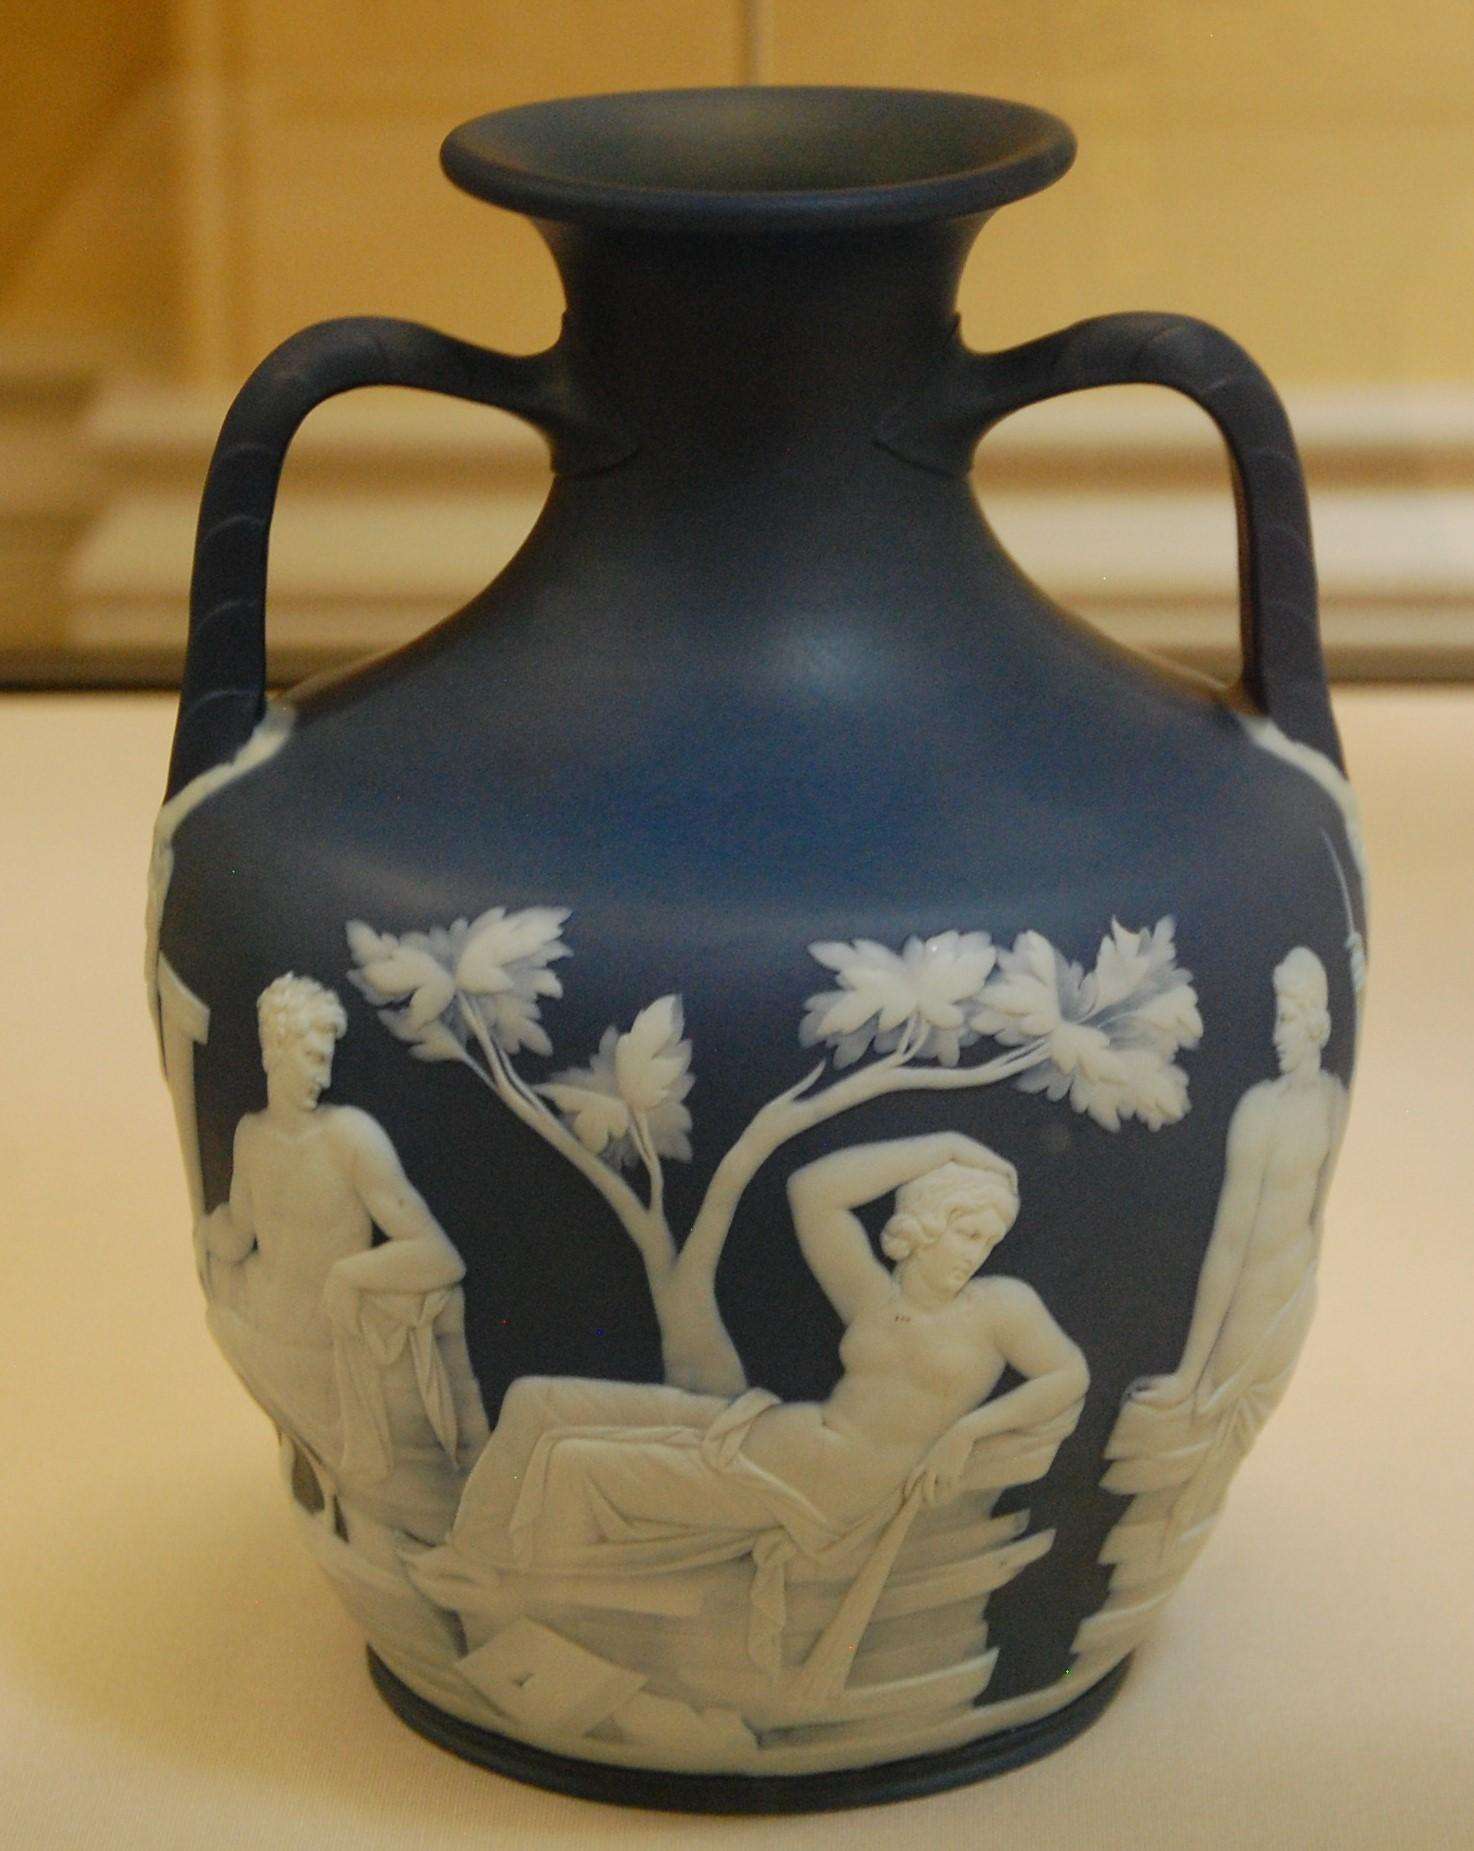 Wedgwood and the portland vase openntedox beta blue jasperware copy of the portland vase wedgwood c 1791 presented to the bm by josiah wedgewoods eldest son john in 1802 reviewsmspy